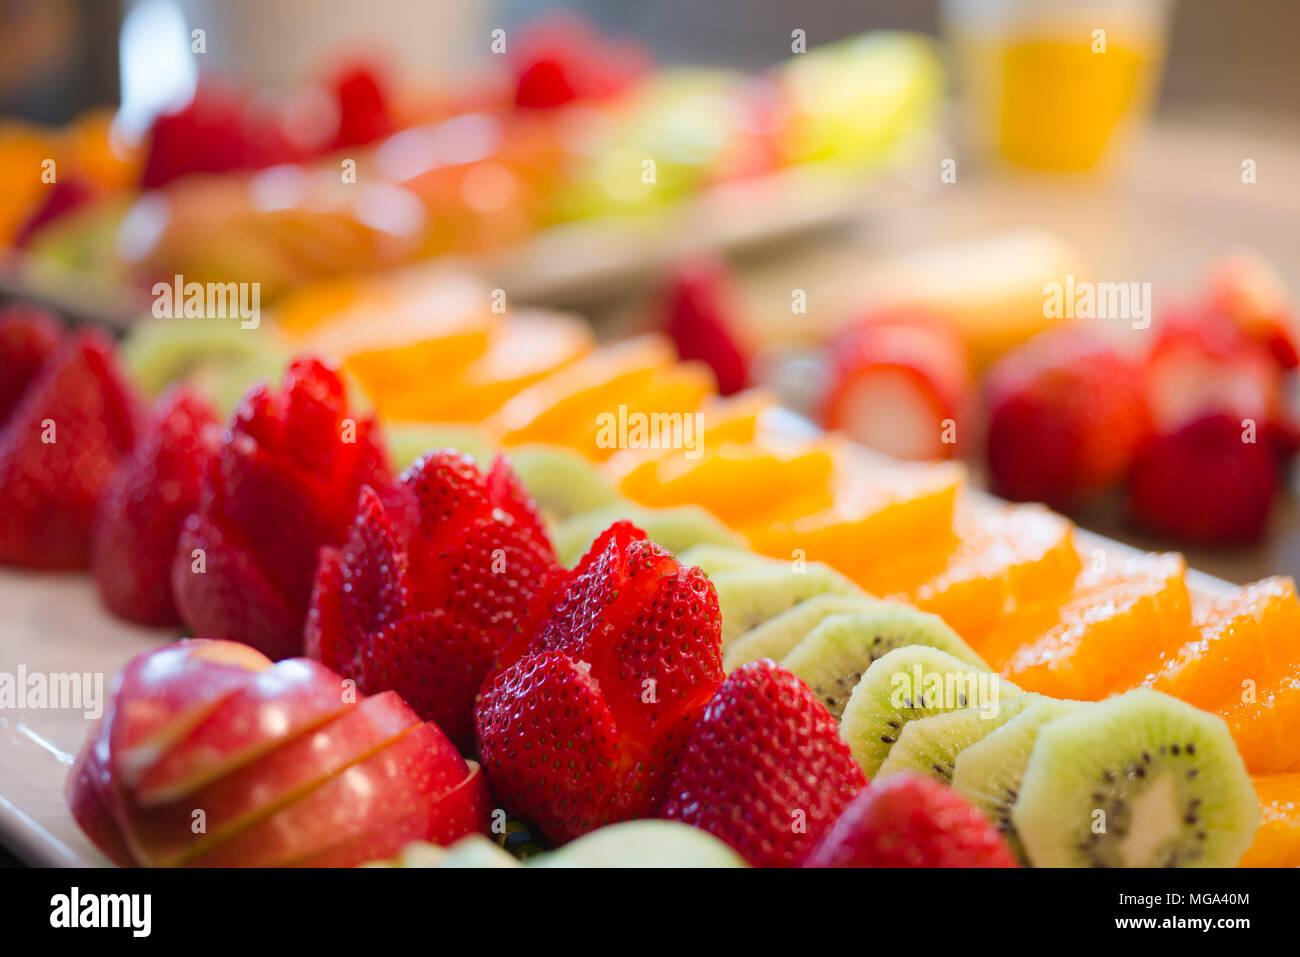 Neatly laid out delicious delicacies low-calorie desserts of fresh sliced apples strawberry kiwi and oranges are ready for any festive table during th - Stock Image